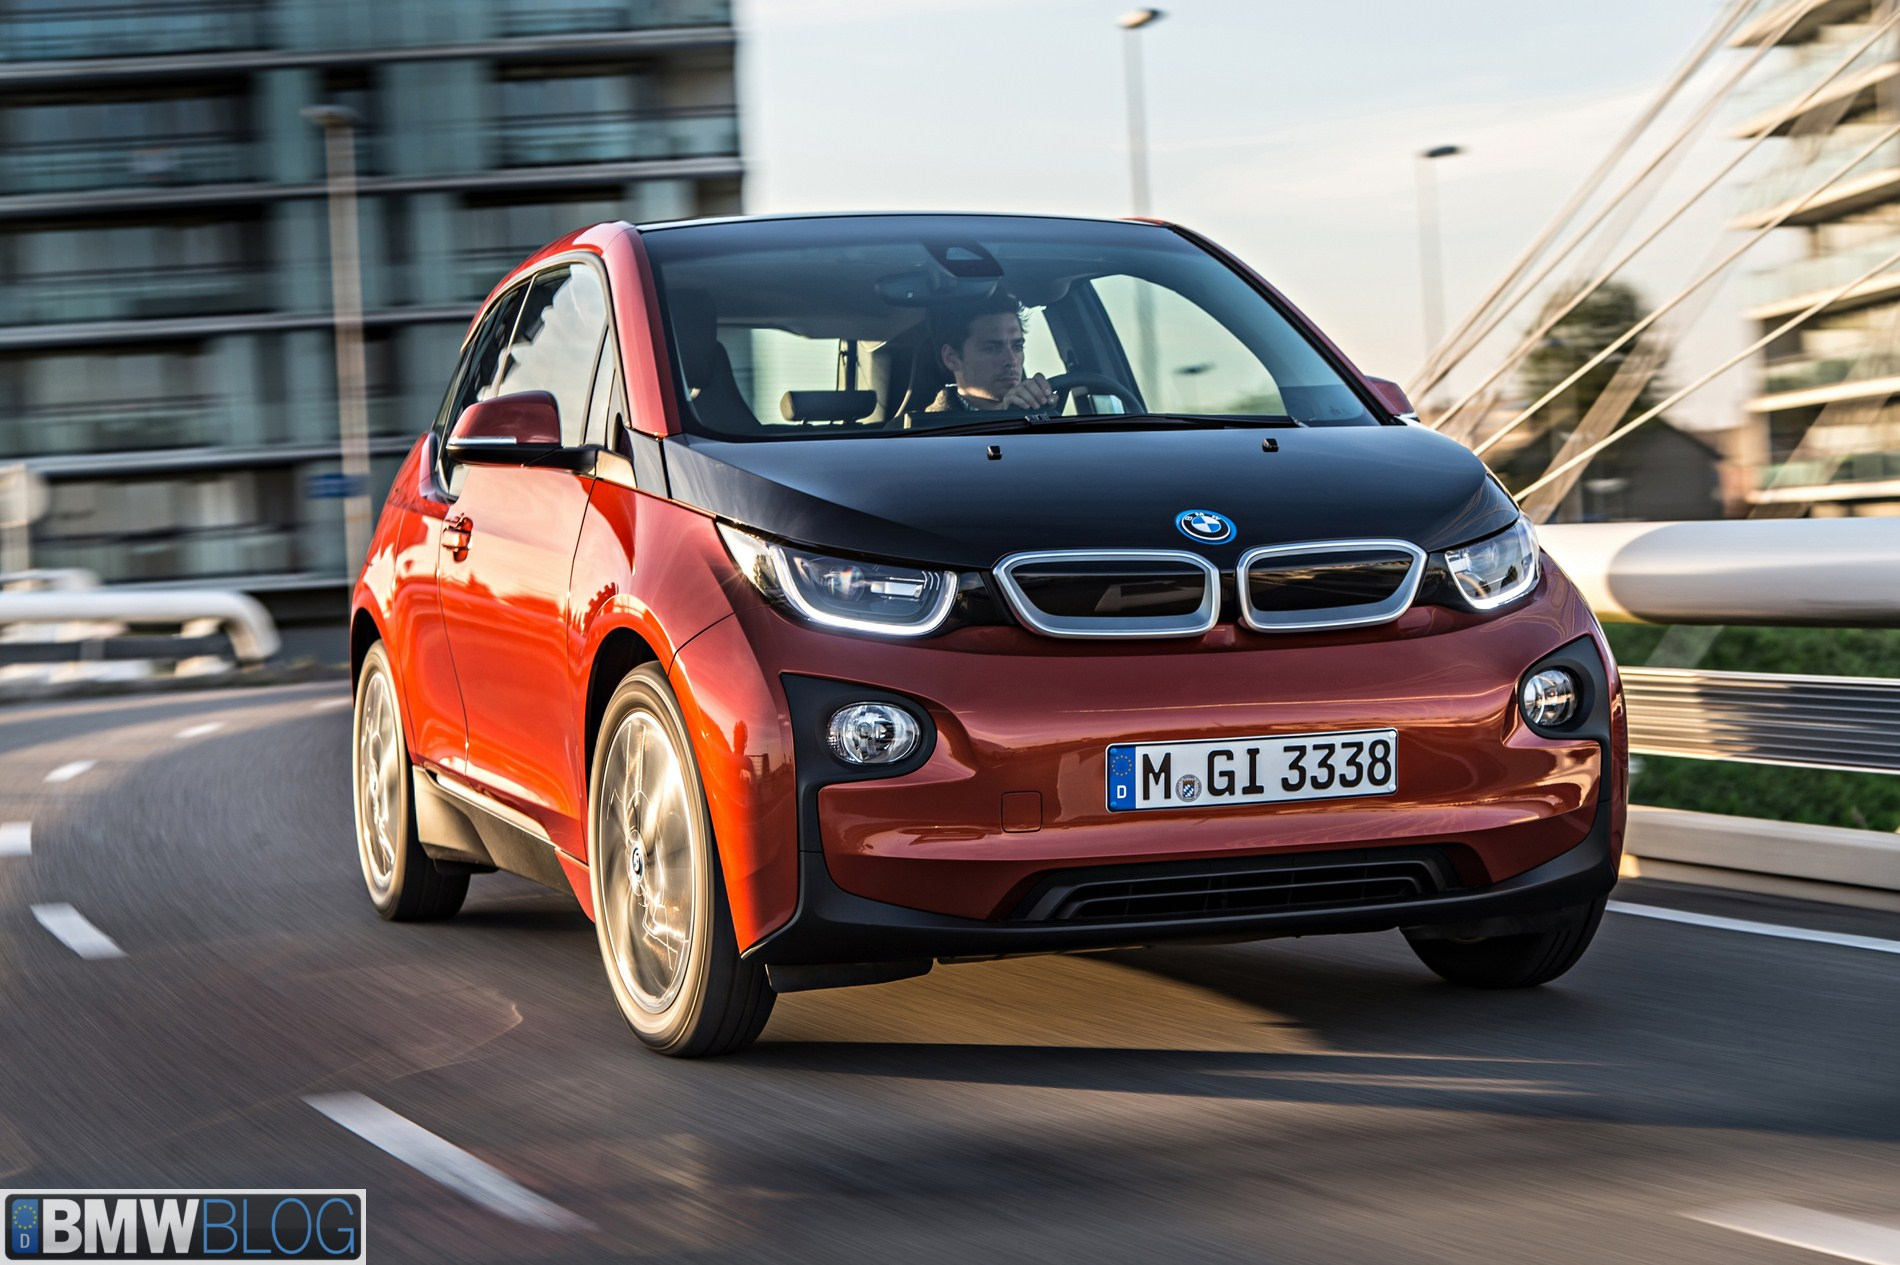 Is the BMW i3 One of the Best BMWs of All Time?